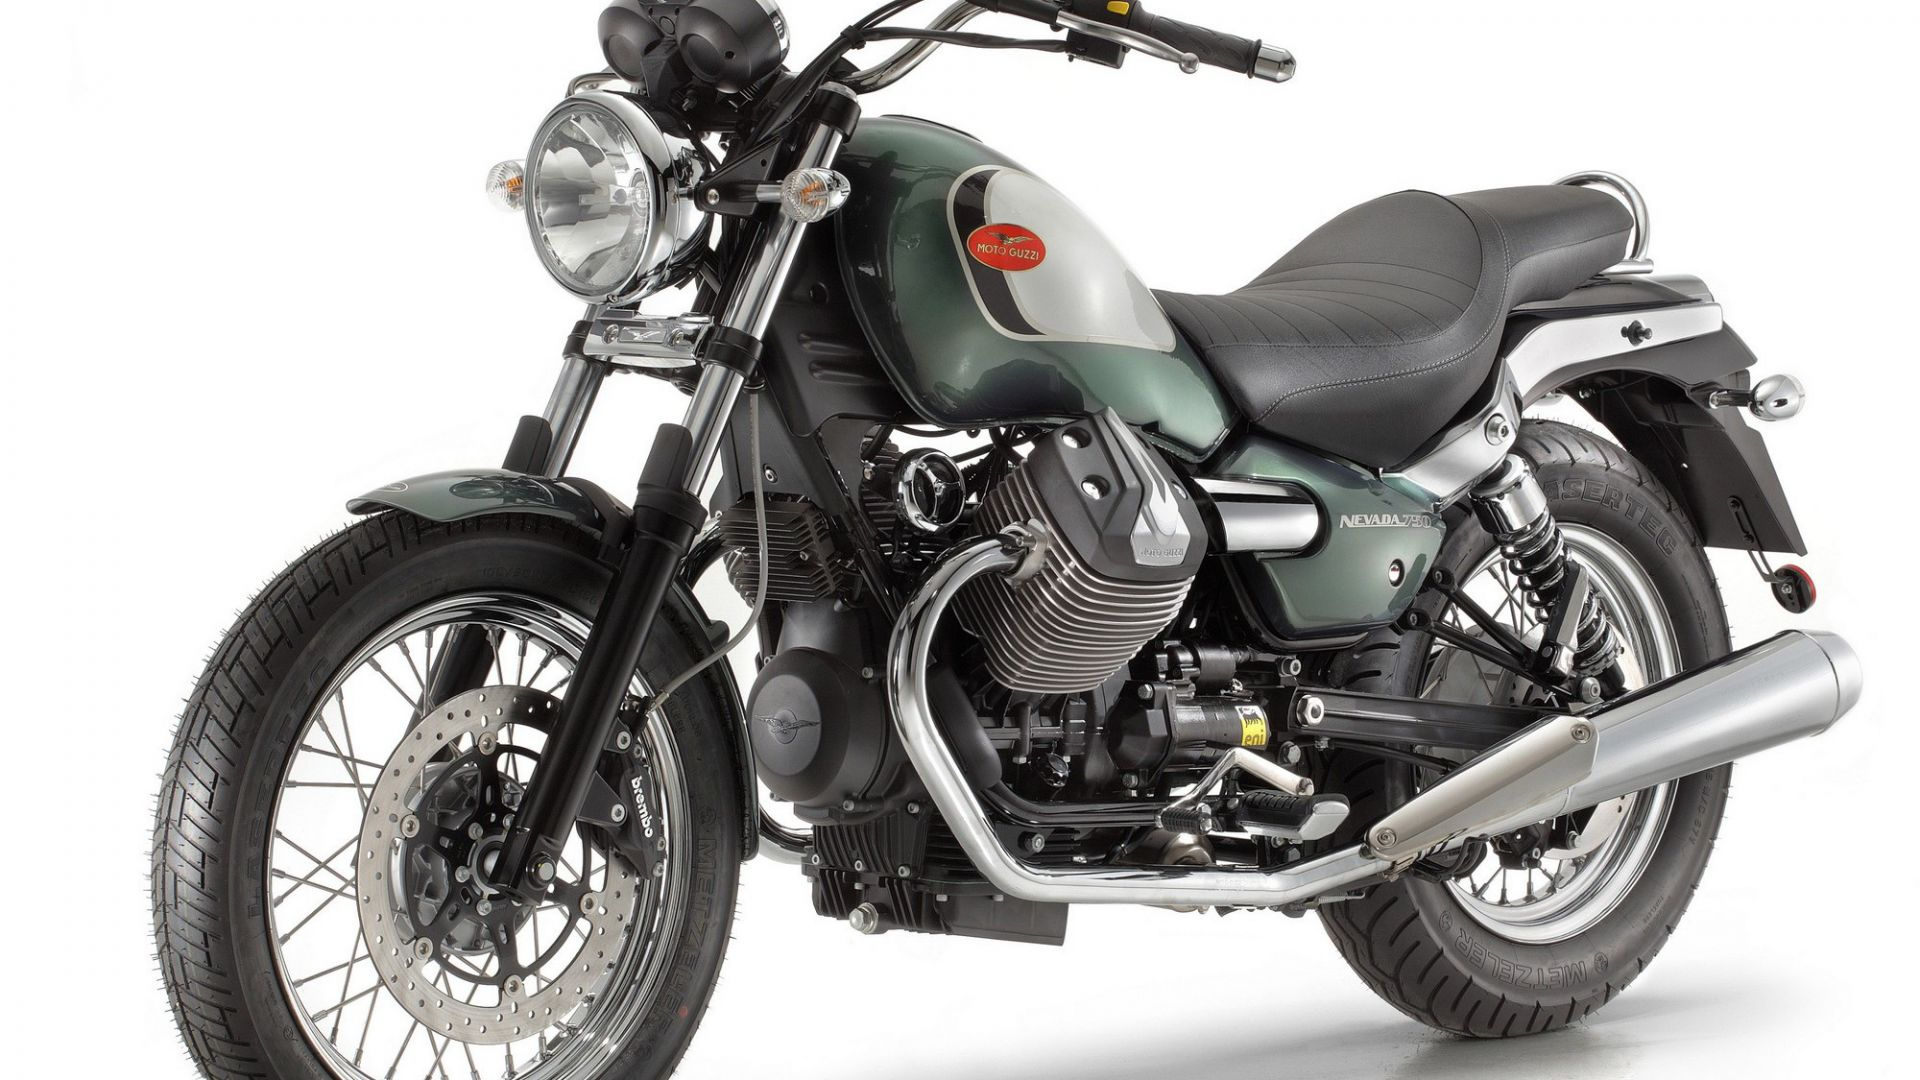 anteprima moto guzzi nevada 2012 motorbox. Black Bedroom Furniture Sets. Home Design Ideas